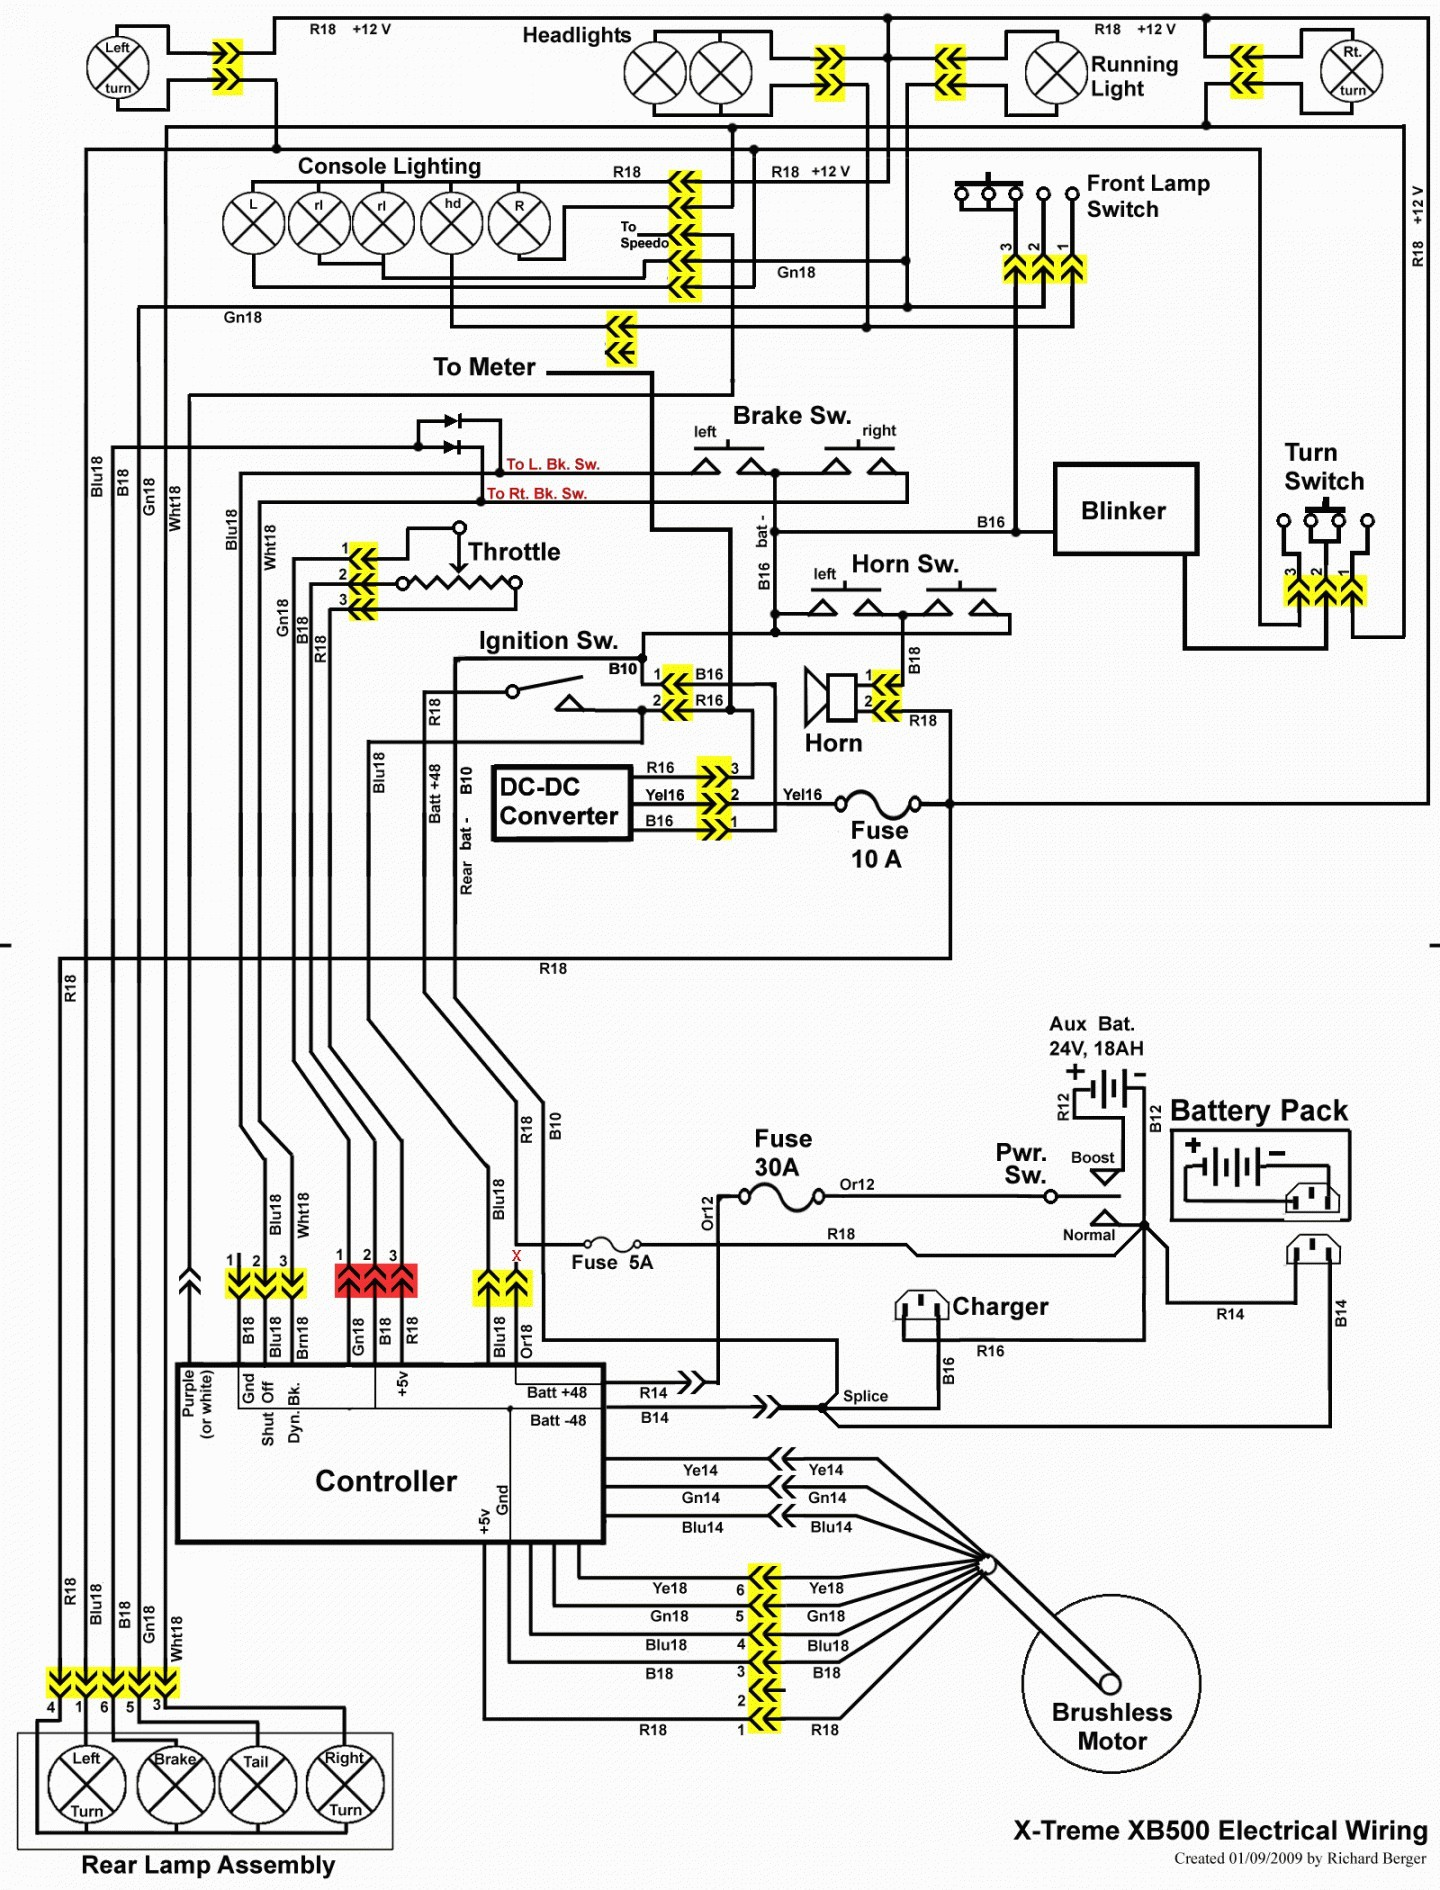 tao tao wiring diagram wiring diagram rh w34 blacz de